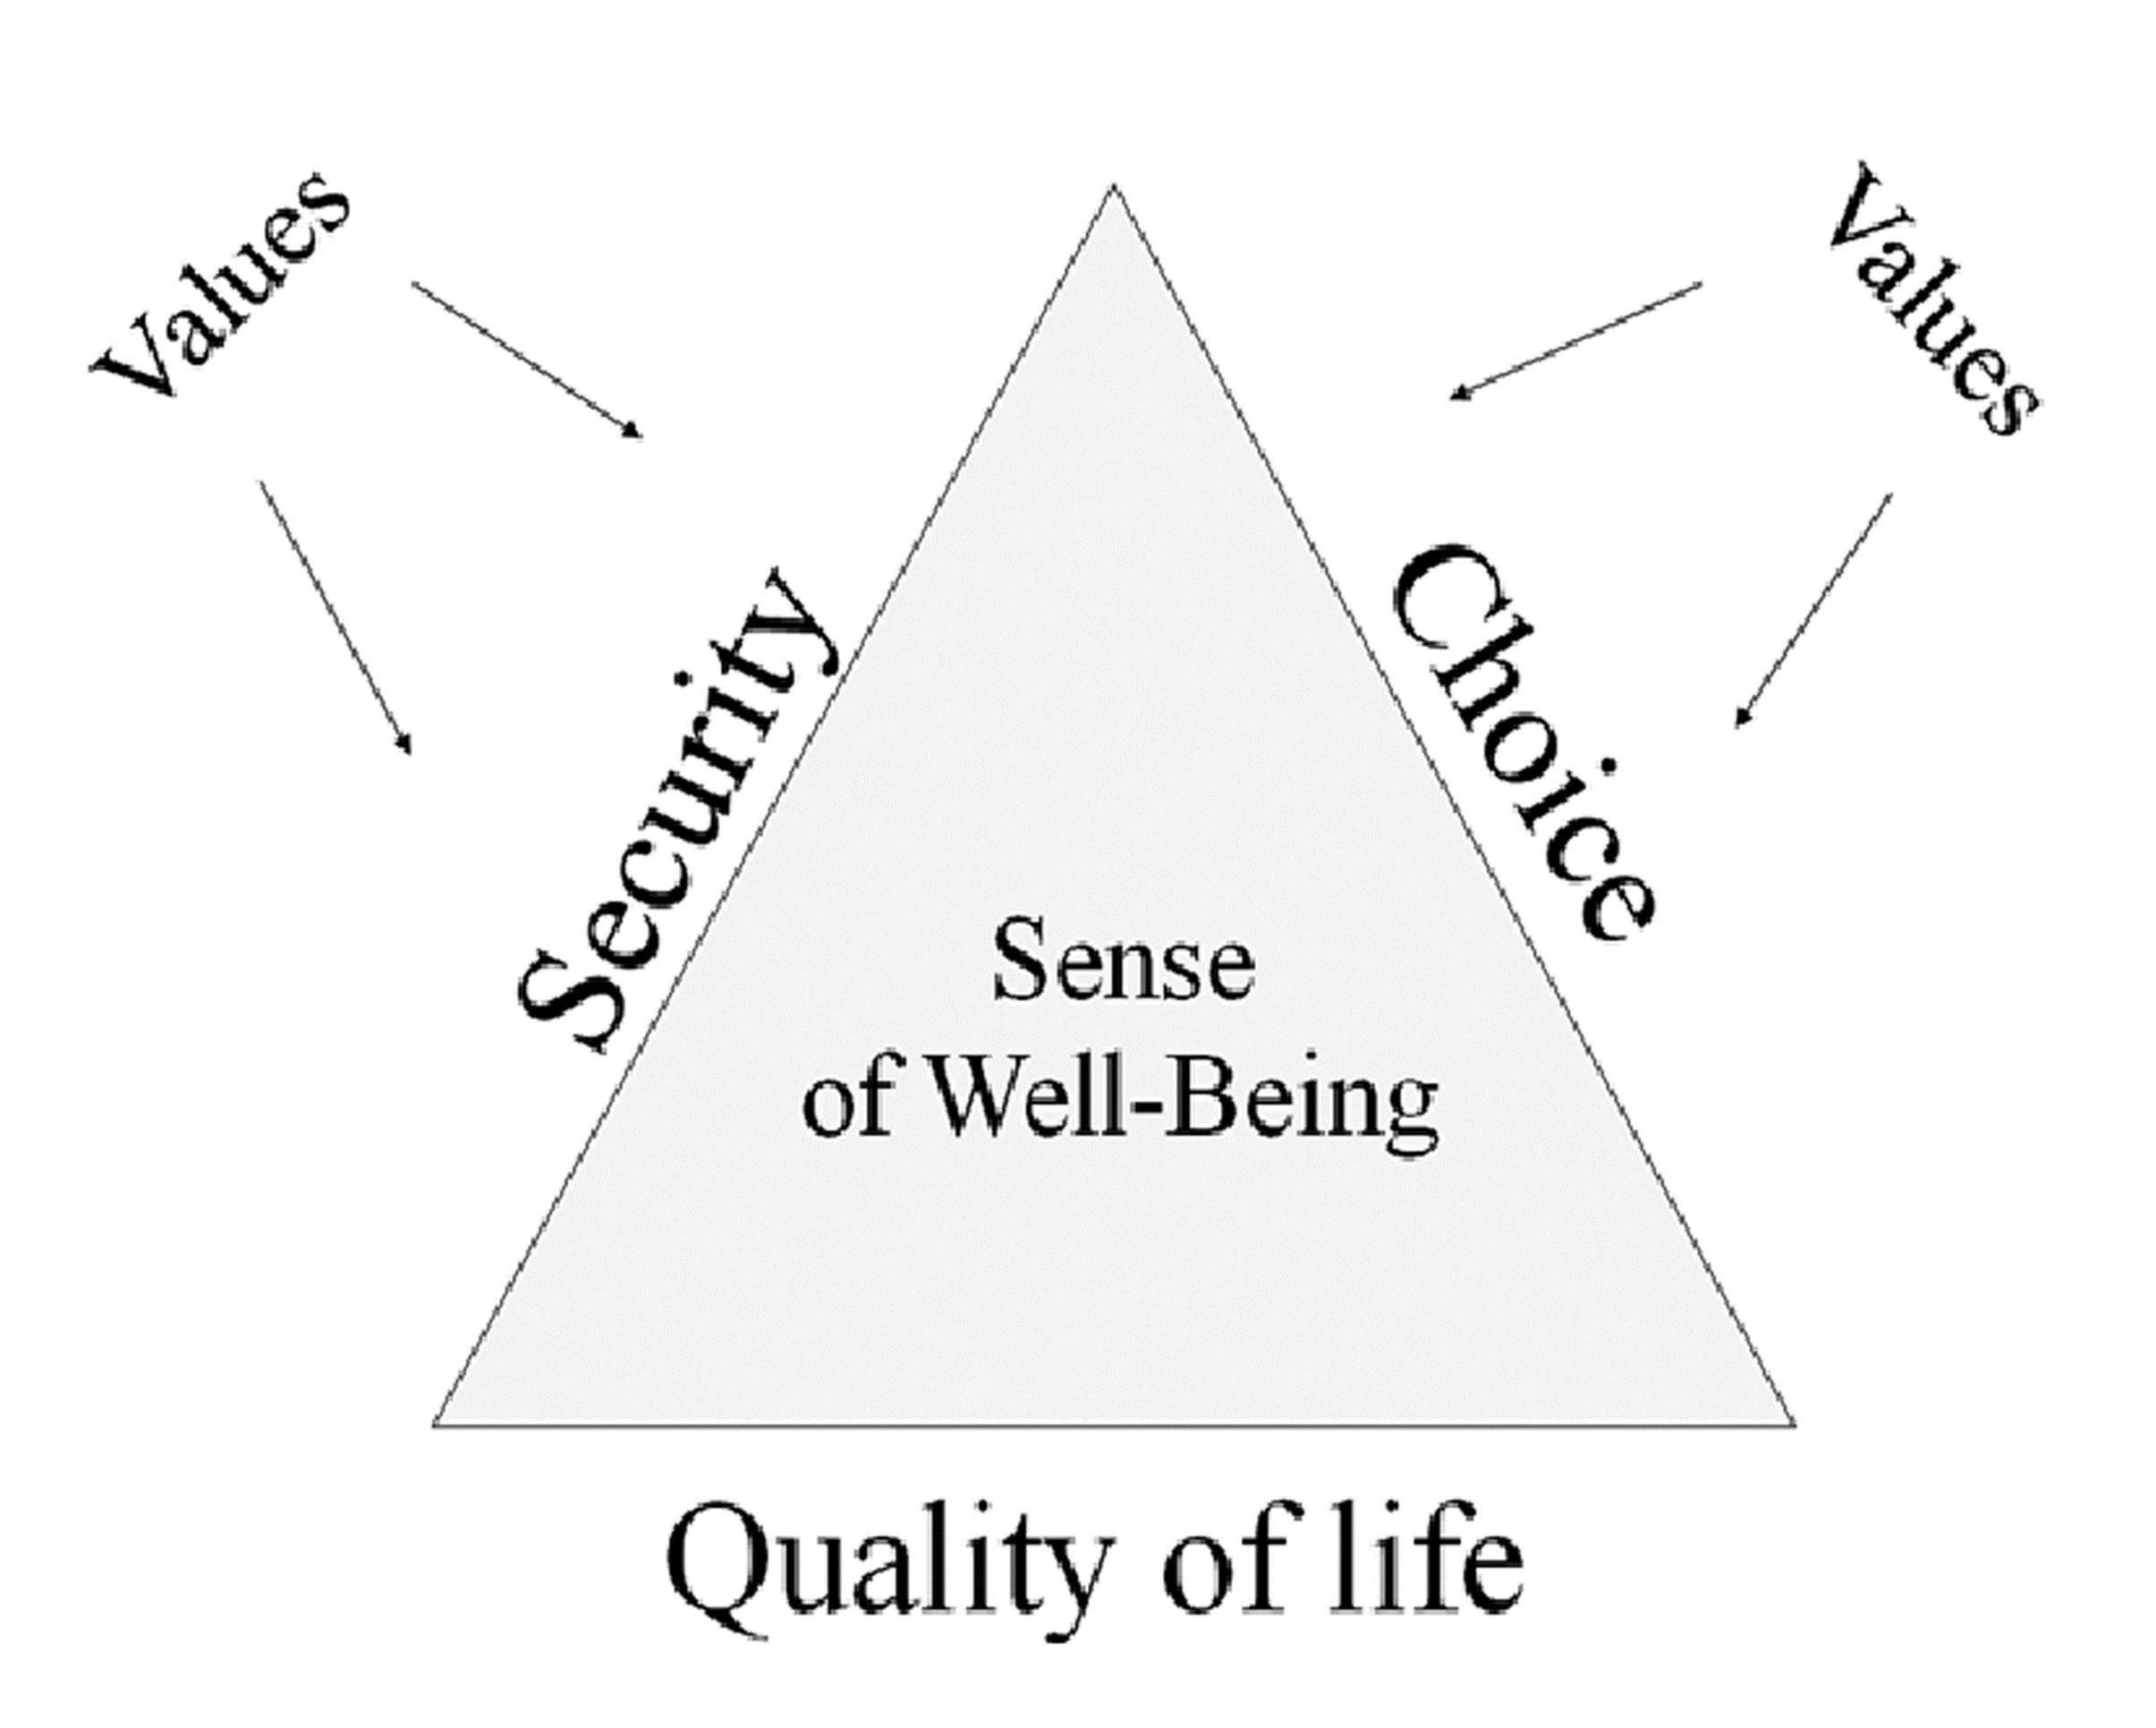 quality of life triangle jpg.jpg